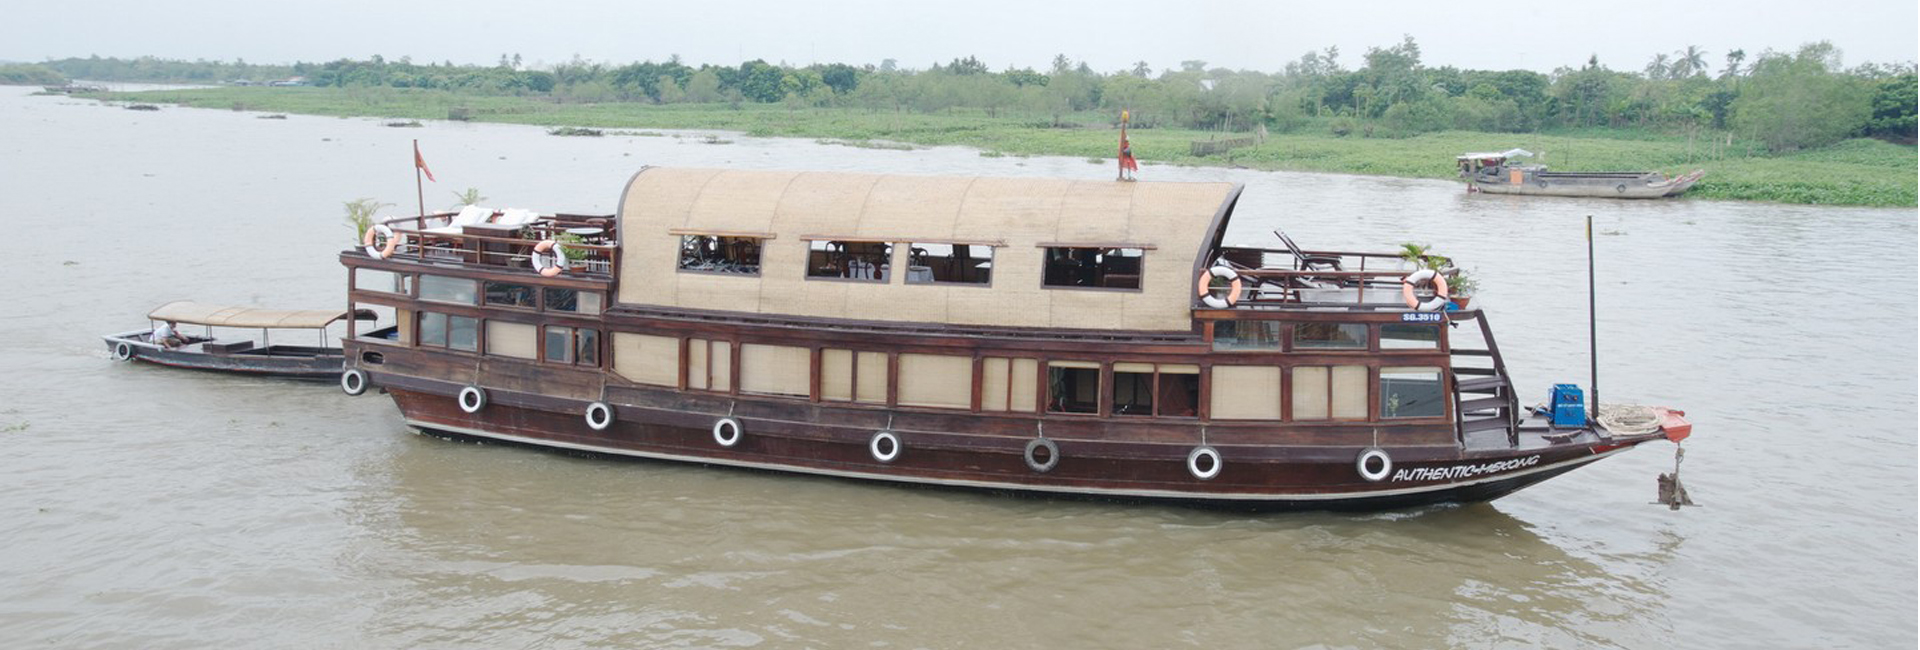 authentic Mekong cruise banner